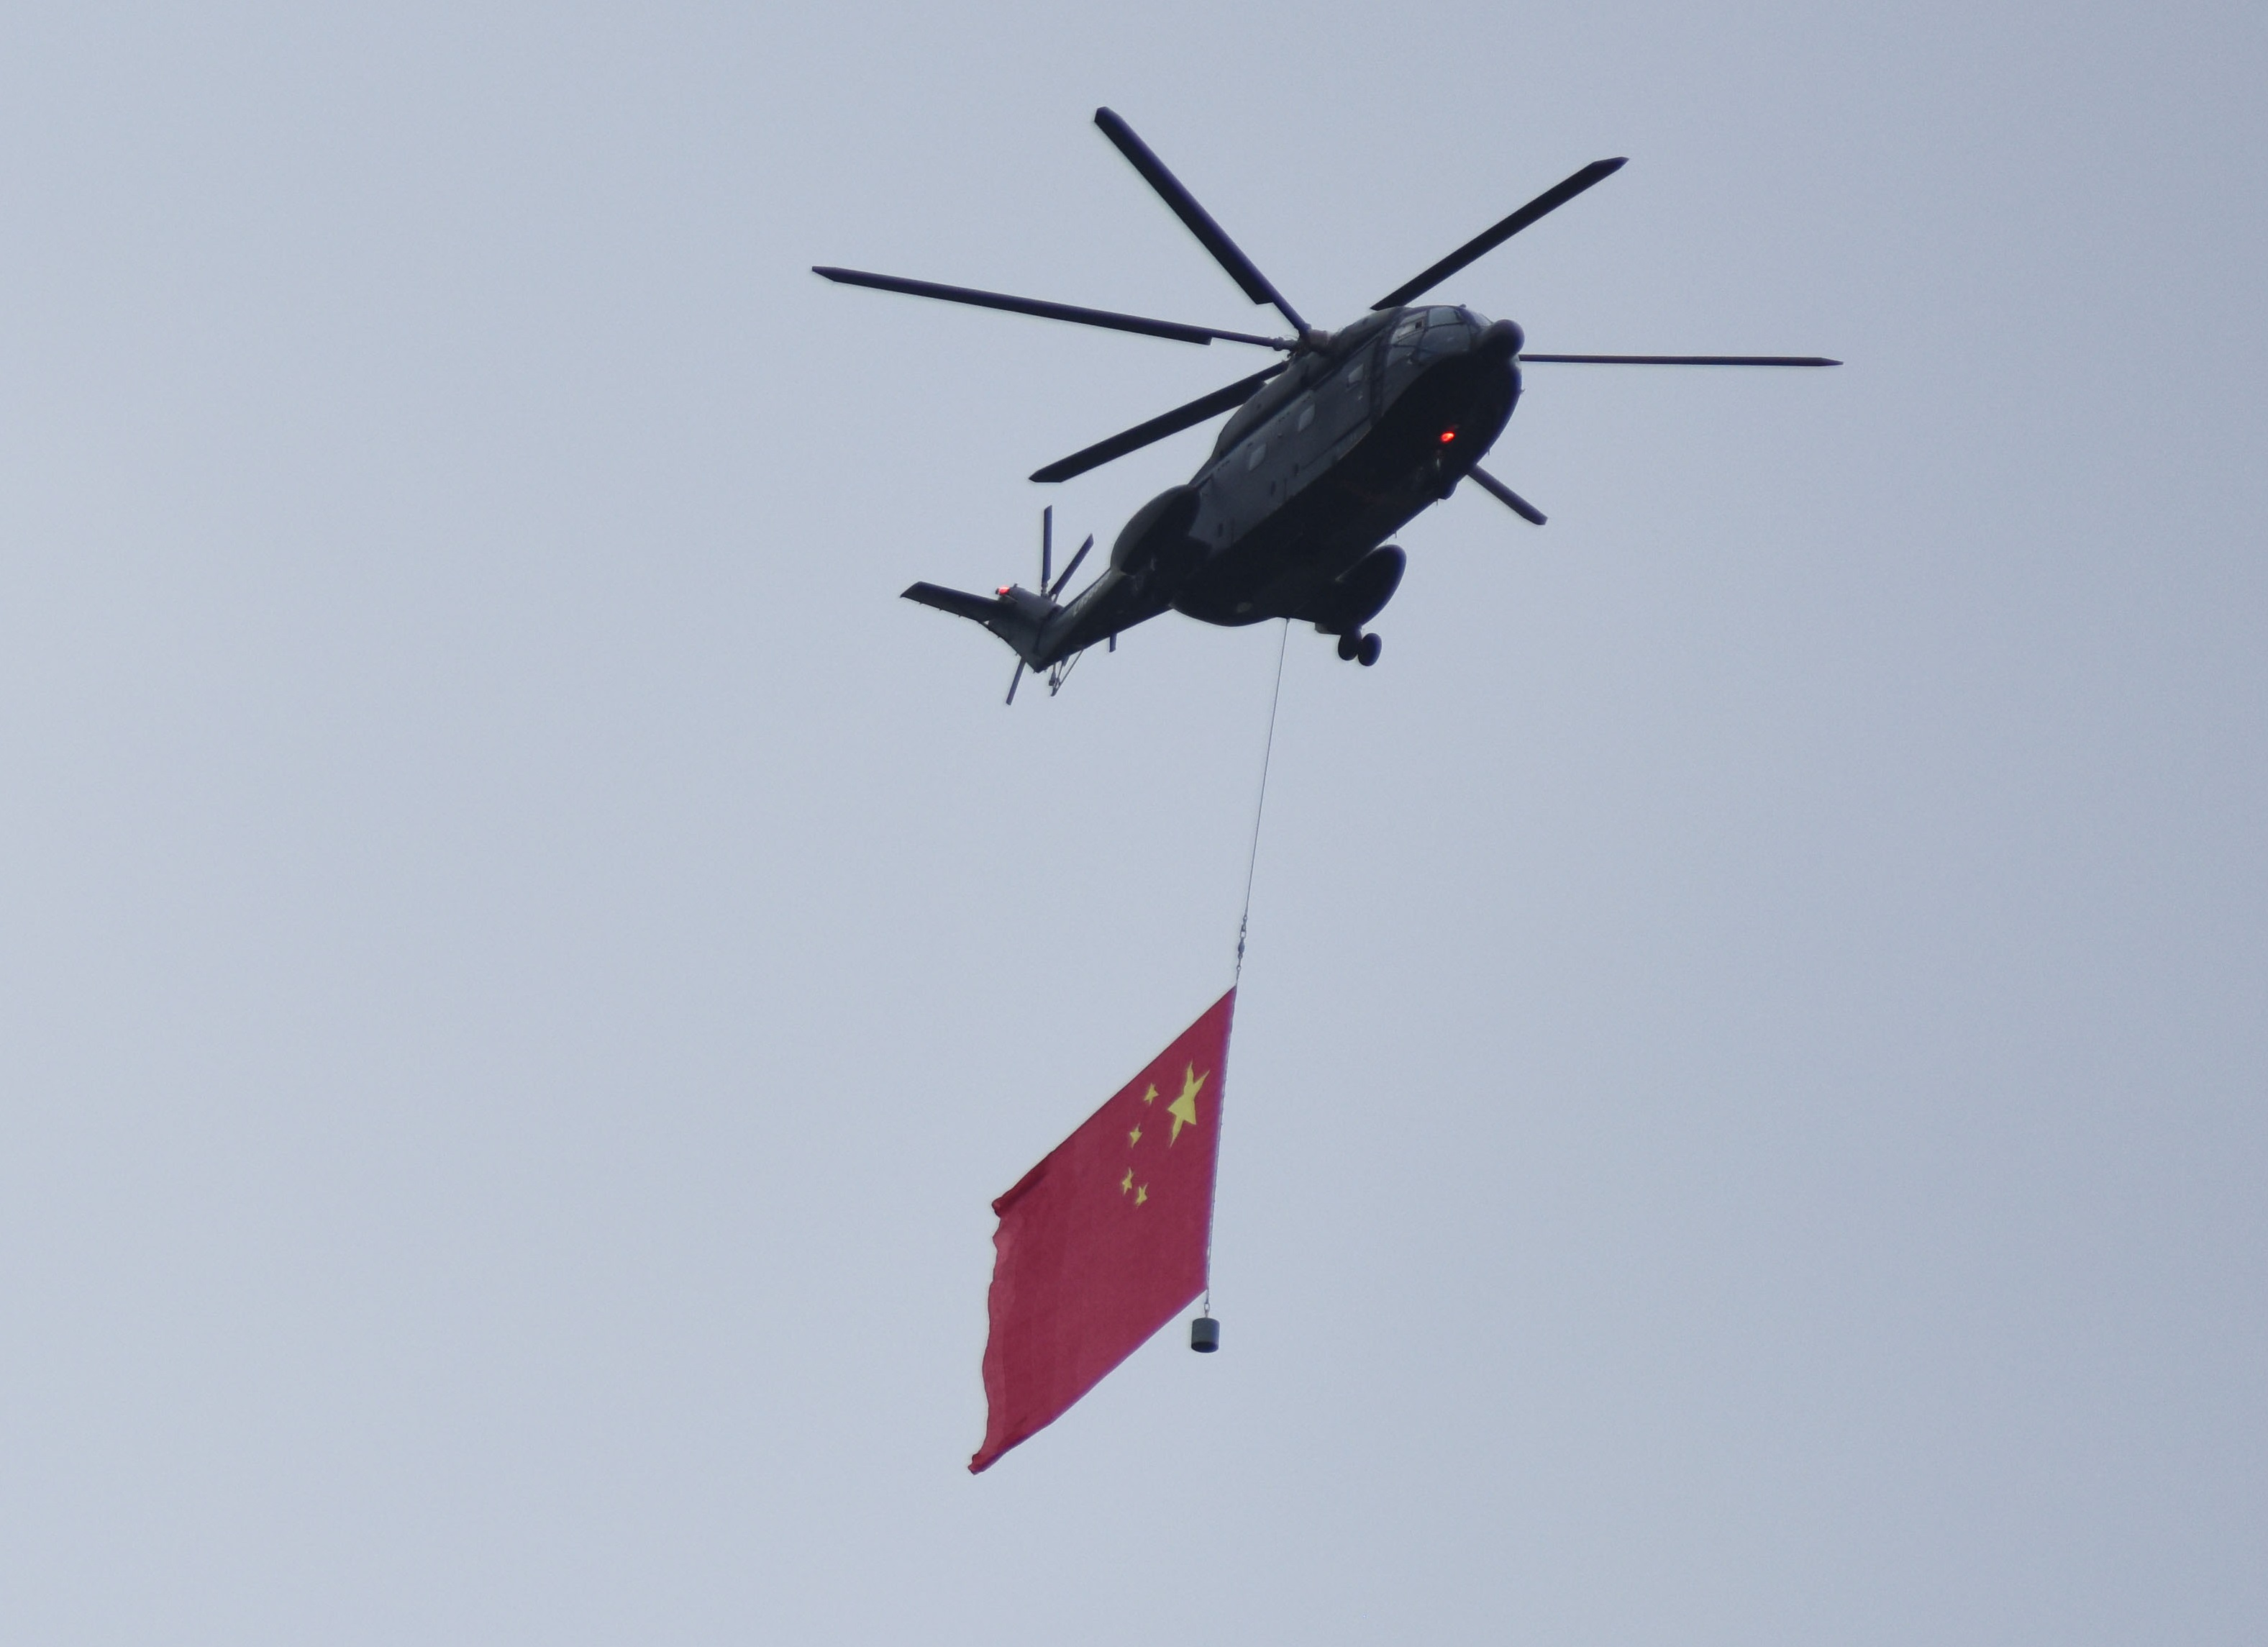 Military Exercises on Tiananmen Meant to Show Party Leader's Control